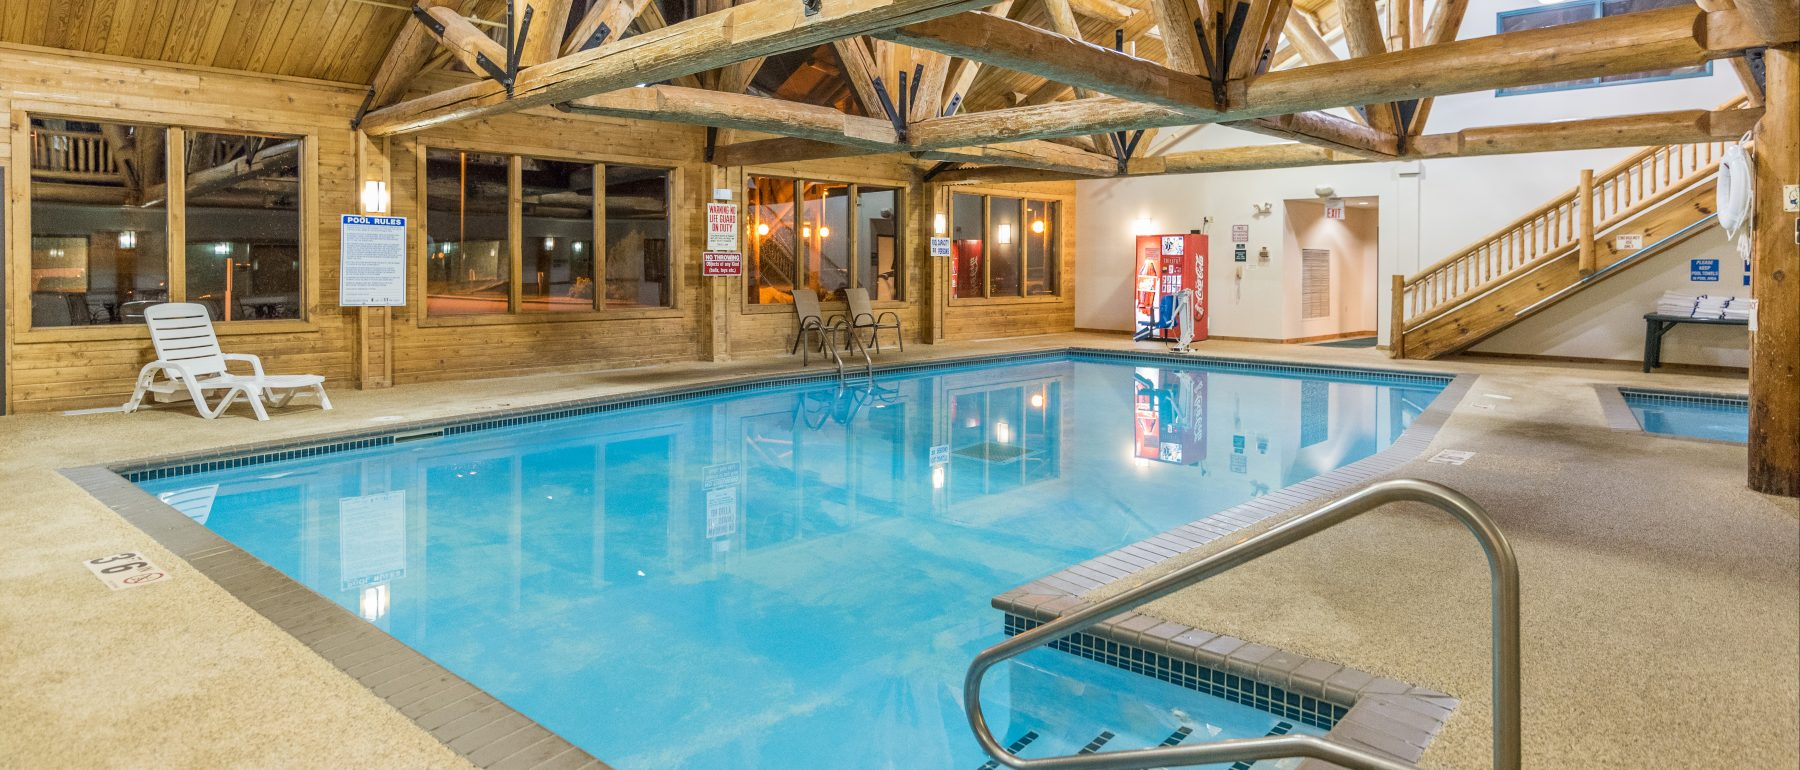 View of the Indoor Pool and Hot tub